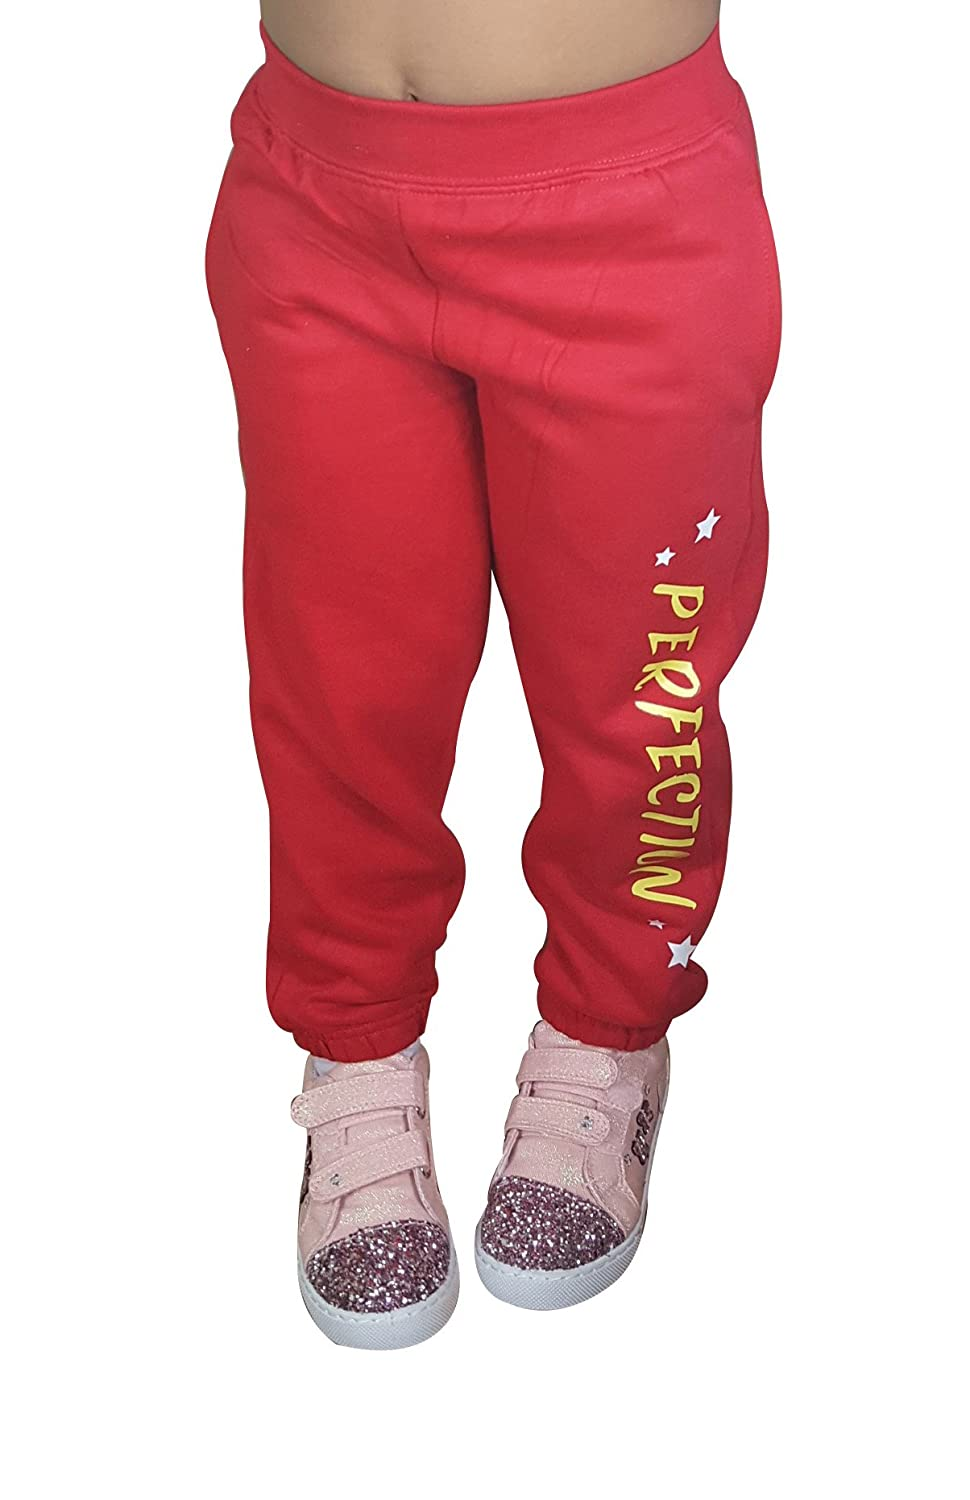 James and Paul Kids Girls Designer Joggers Tracksuit Trousers Girls Sweatpants Bottoms Unisex Kids Jogging Bottoms Sizes Age 1-6 Years PE School Sports Pants